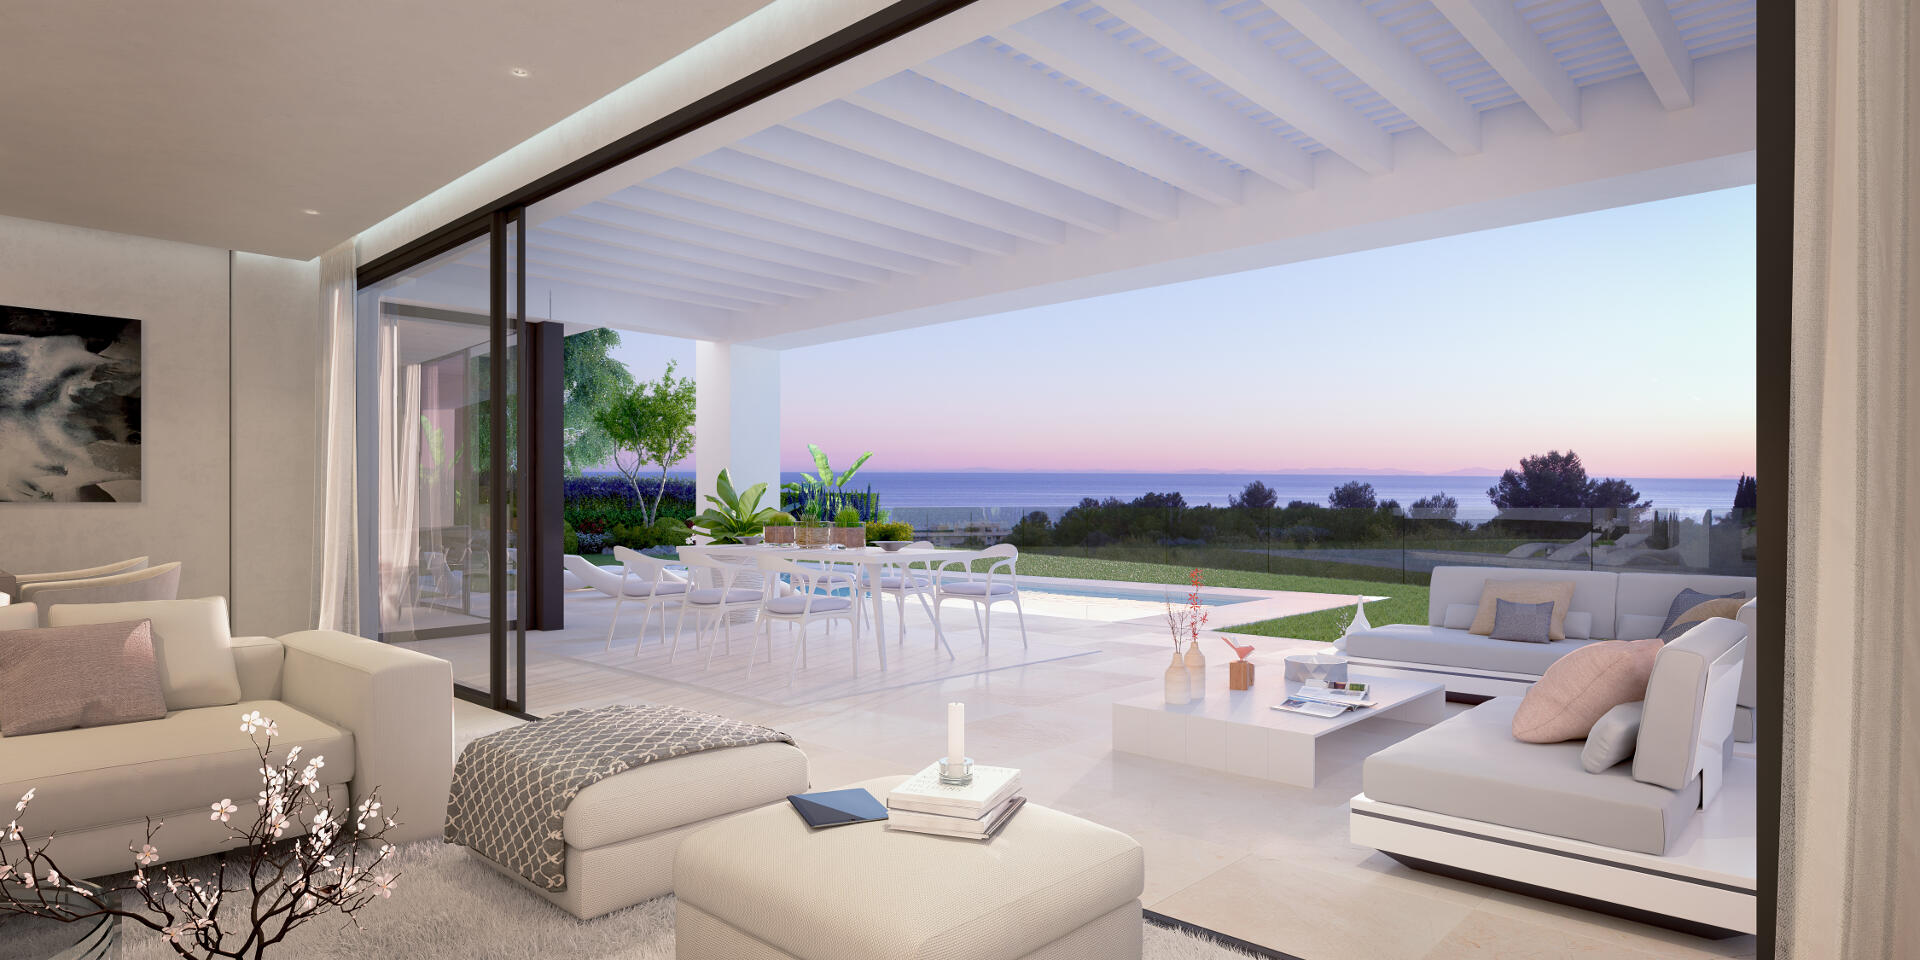 Caboroyale new one level villa with sea views for sale in East Marbella